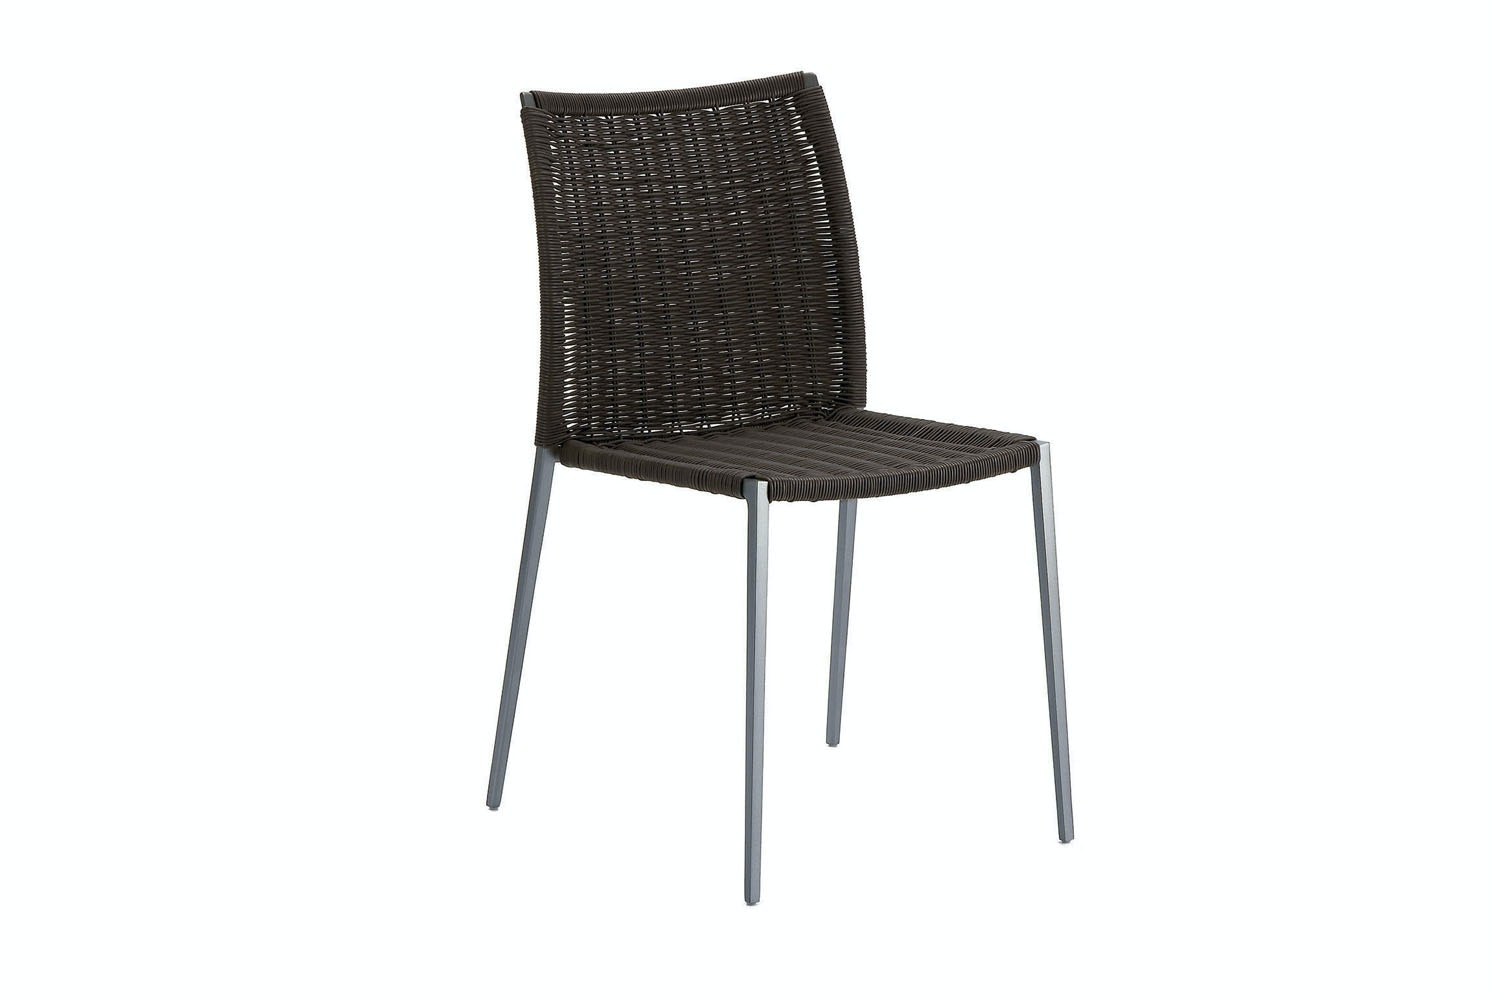 Talia 2079 Outdoor Chair by Roberto Barbieri for Zanotta